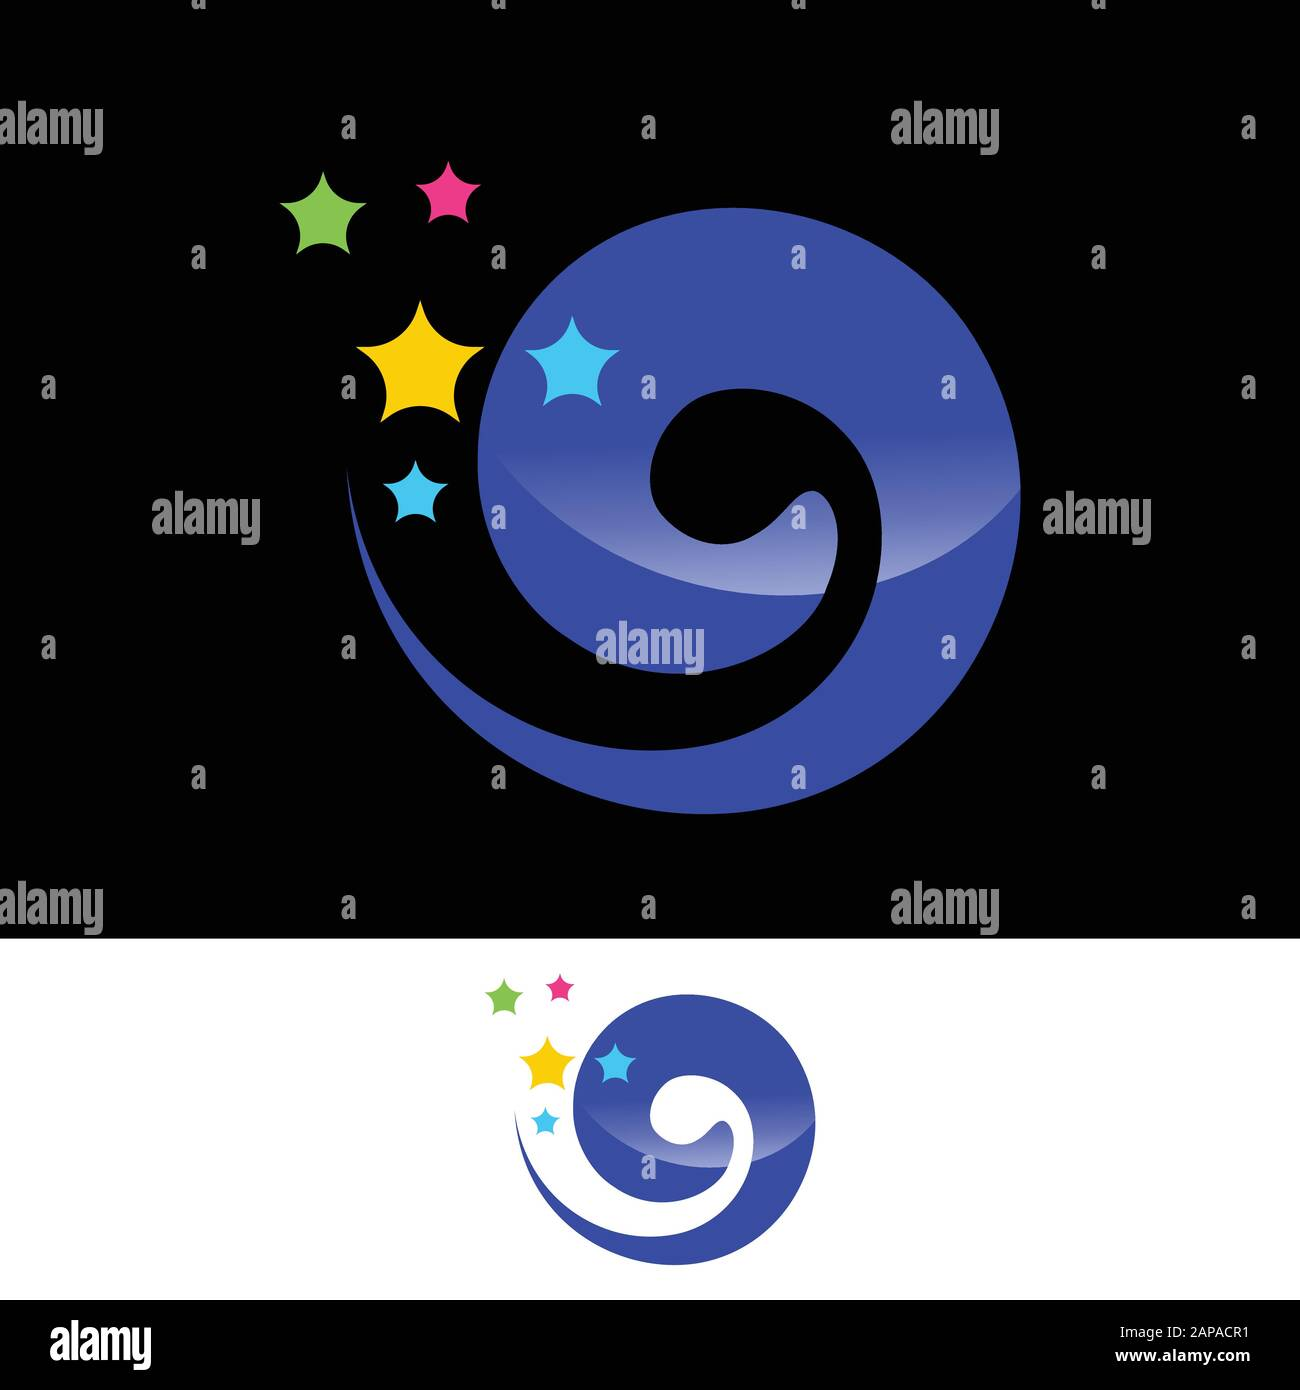 Dream Logo Design. Dream Logo Vector Template Stock Vector